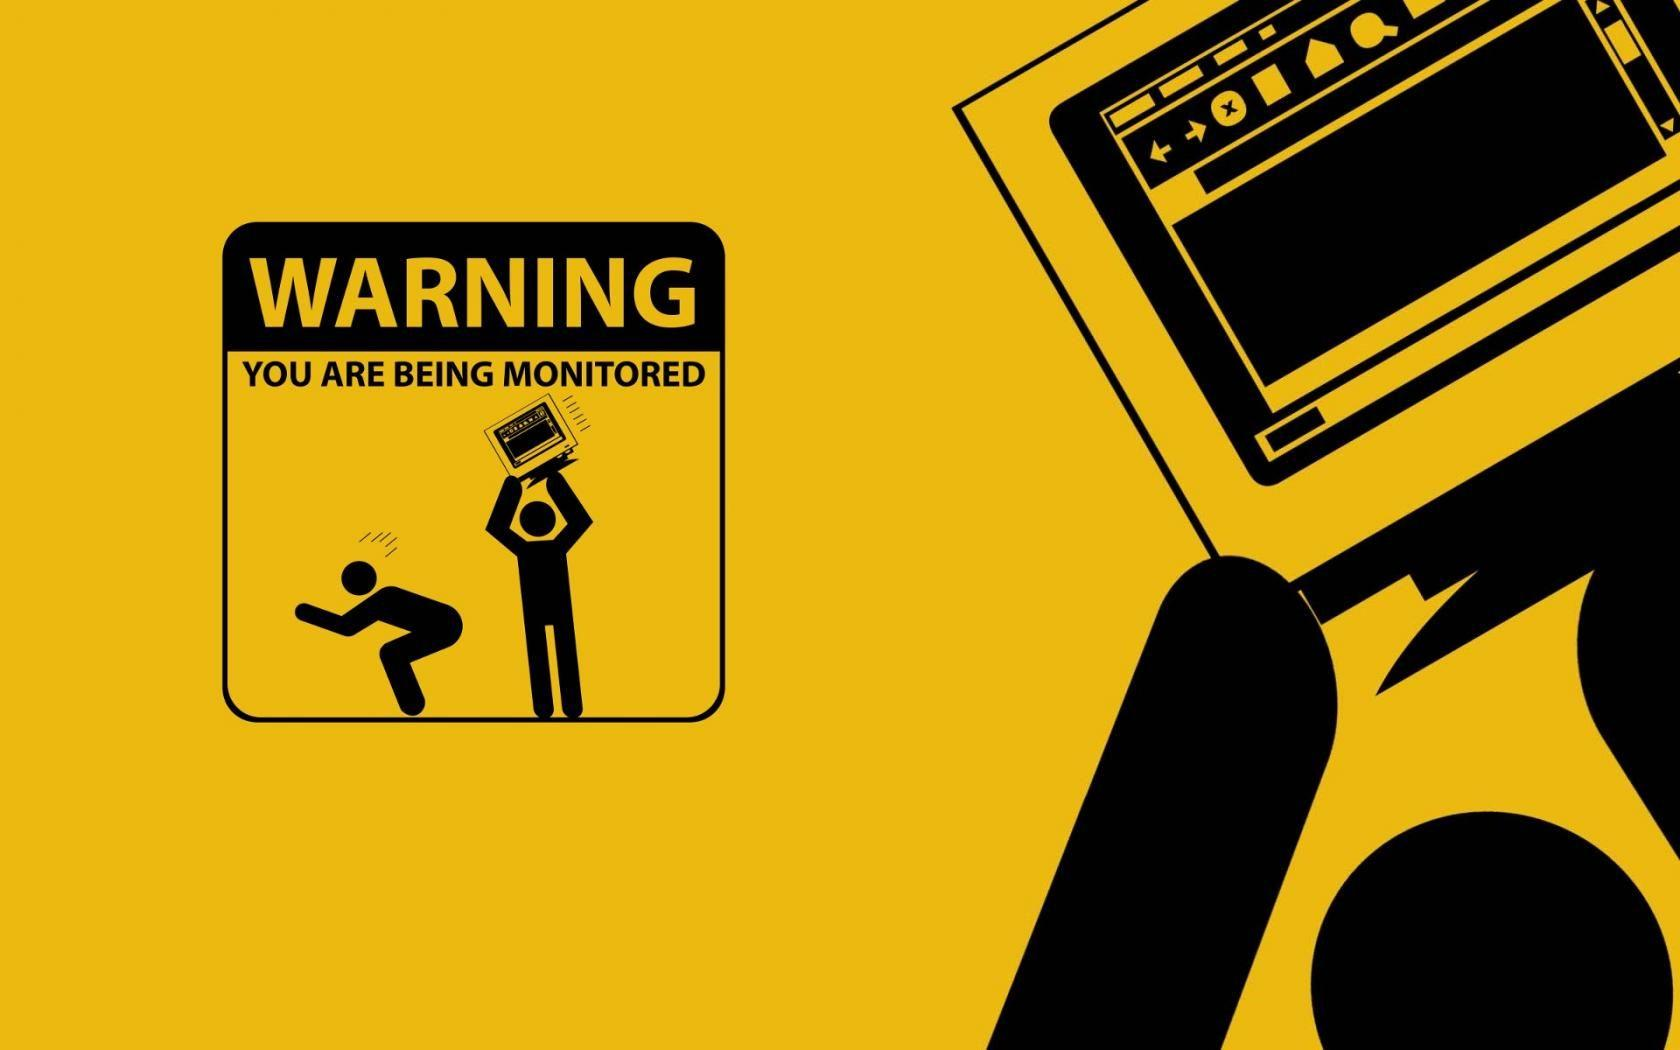 Caution funny minimalistic monitor warning wallpaper | (43198)